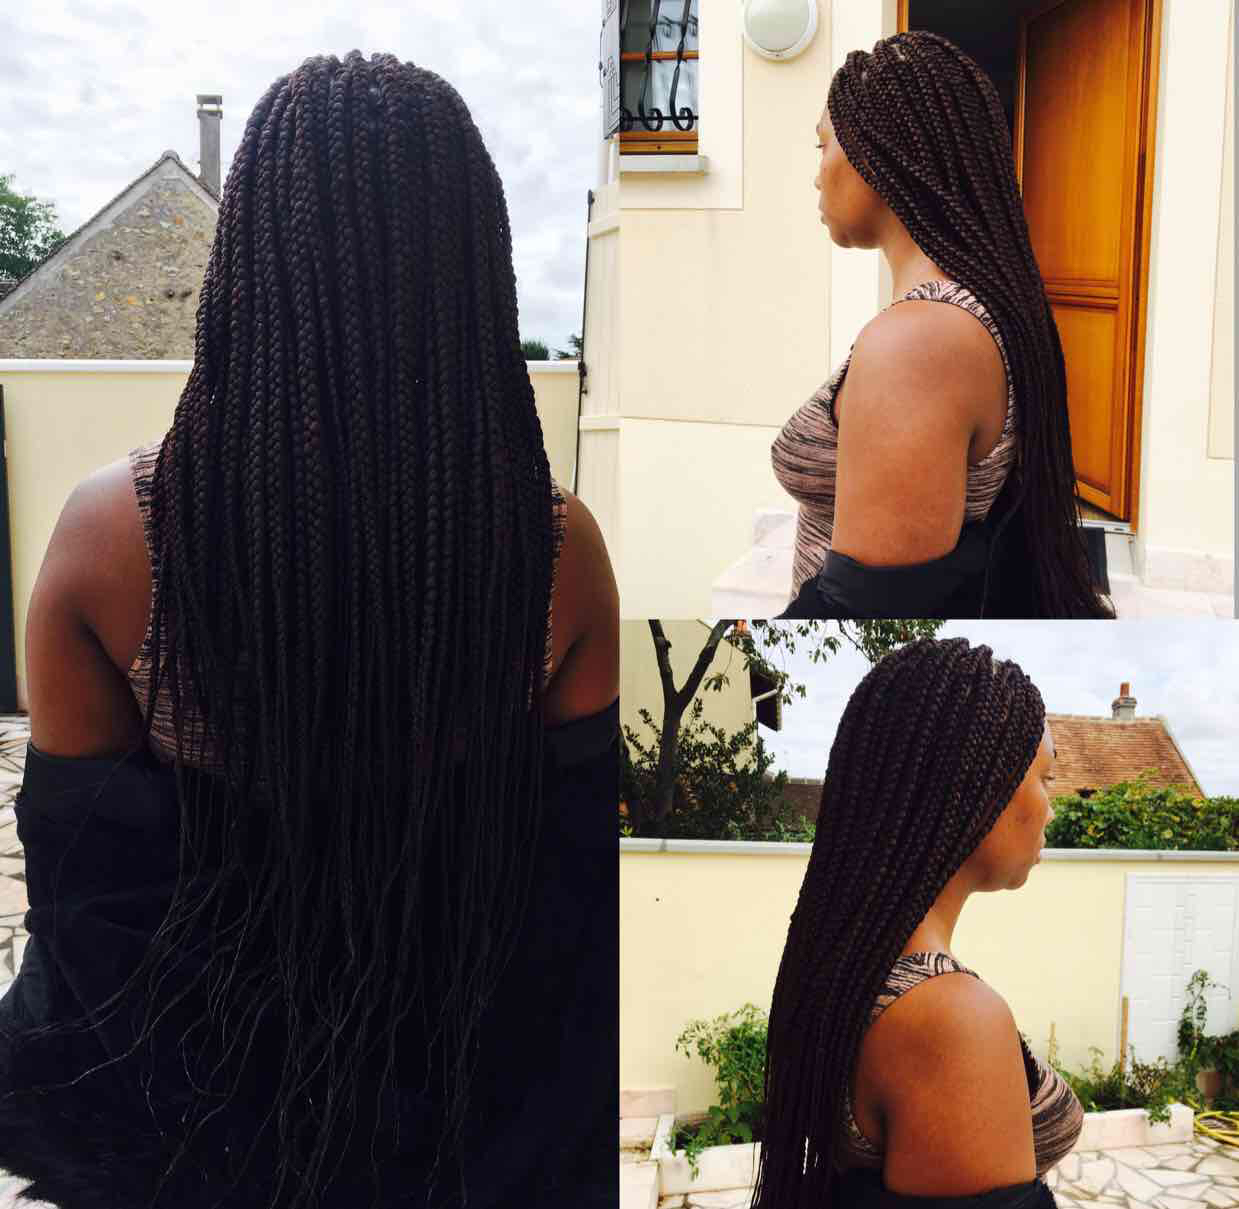 salon de coiffure afro tresse tresses box braids crochet braids vanilles tissages paris 75 77 78 91 92 93 94 95 KKZDMMJJ